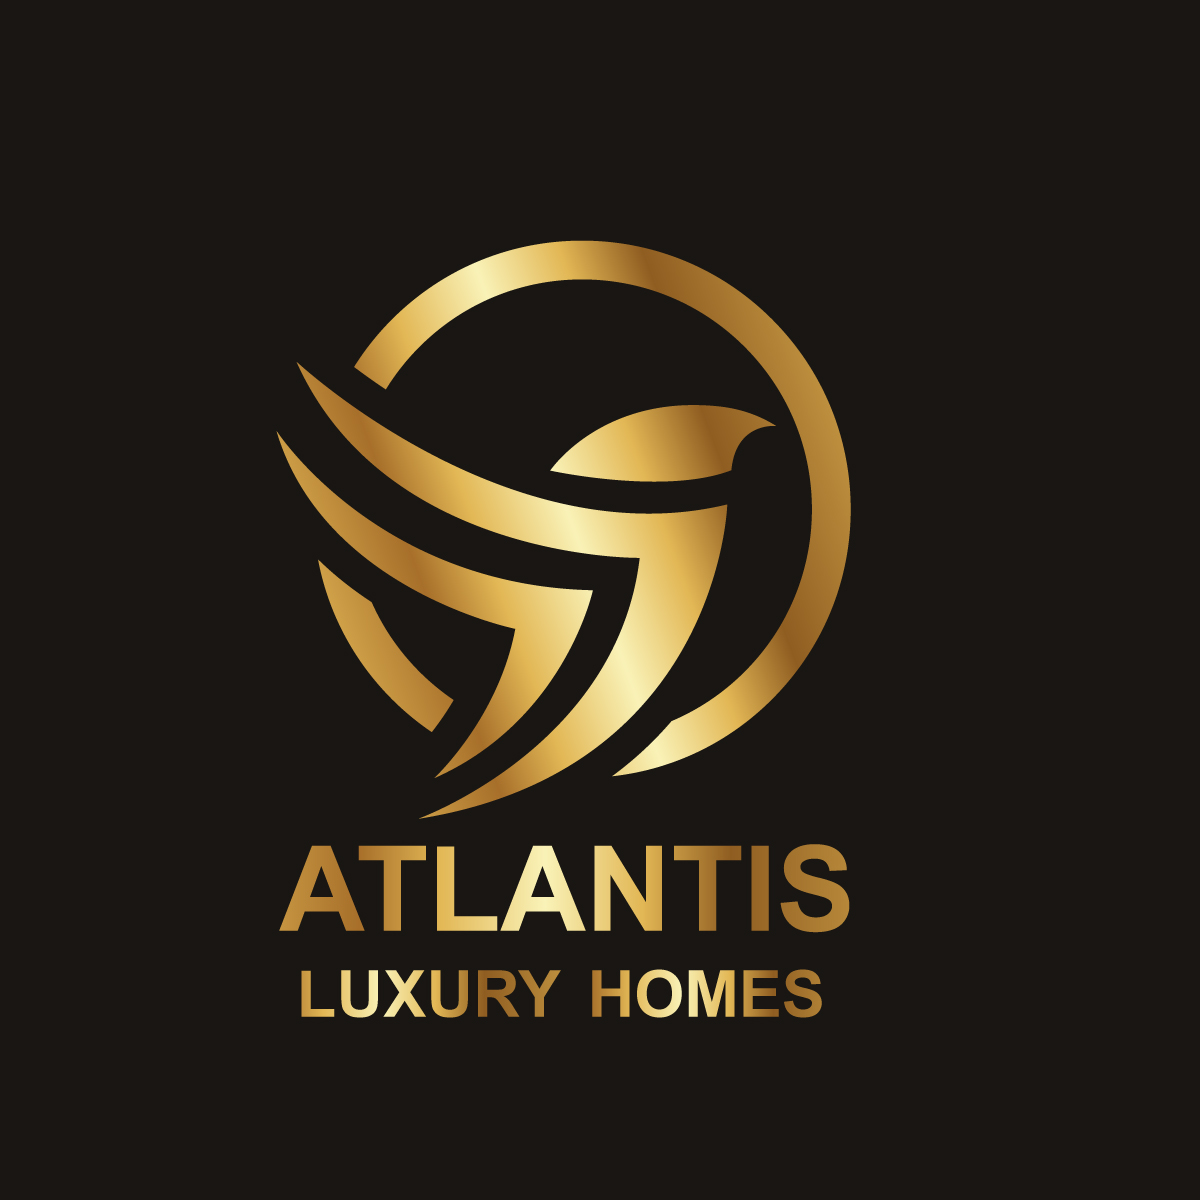 Atlantis Luxury Homes